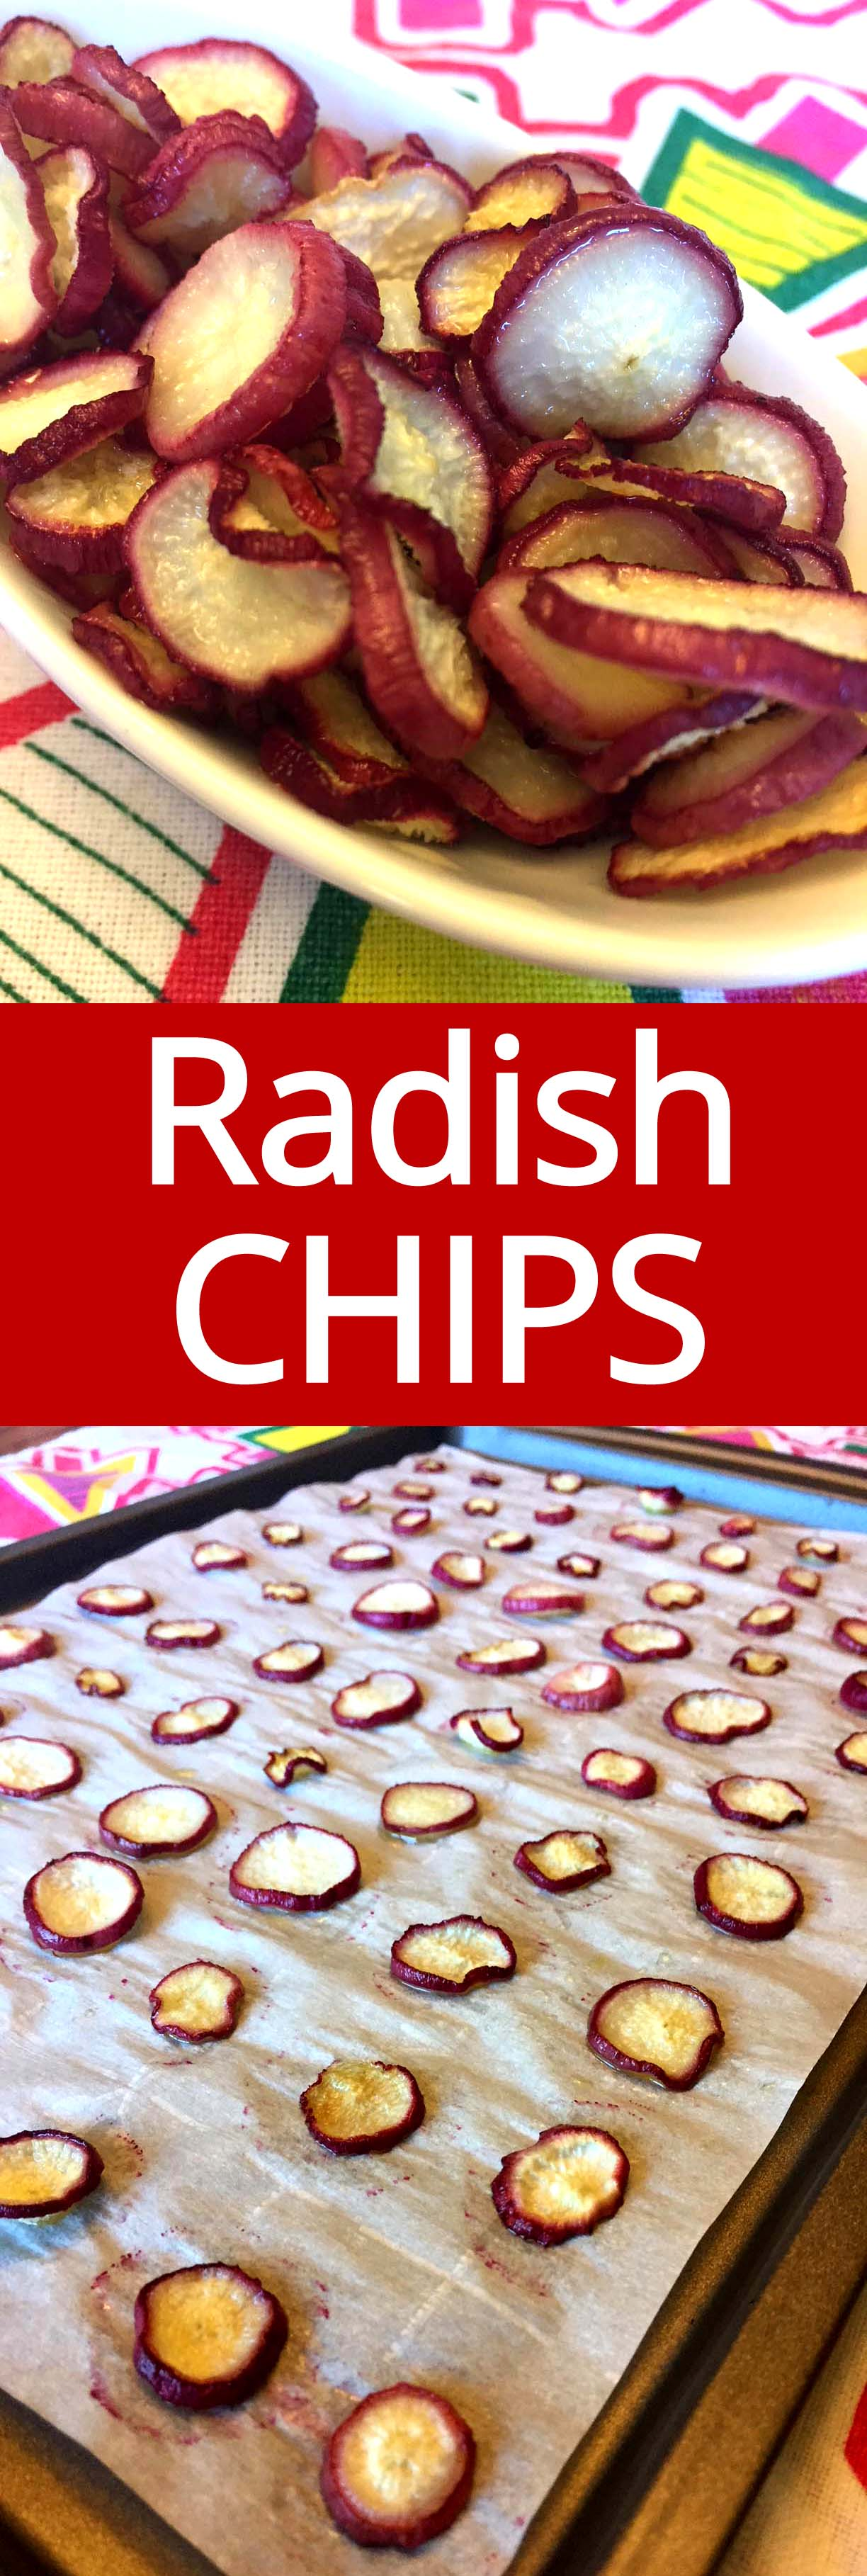 These oven baked radish chips are amazing! This is a perfect low-carb snack option!